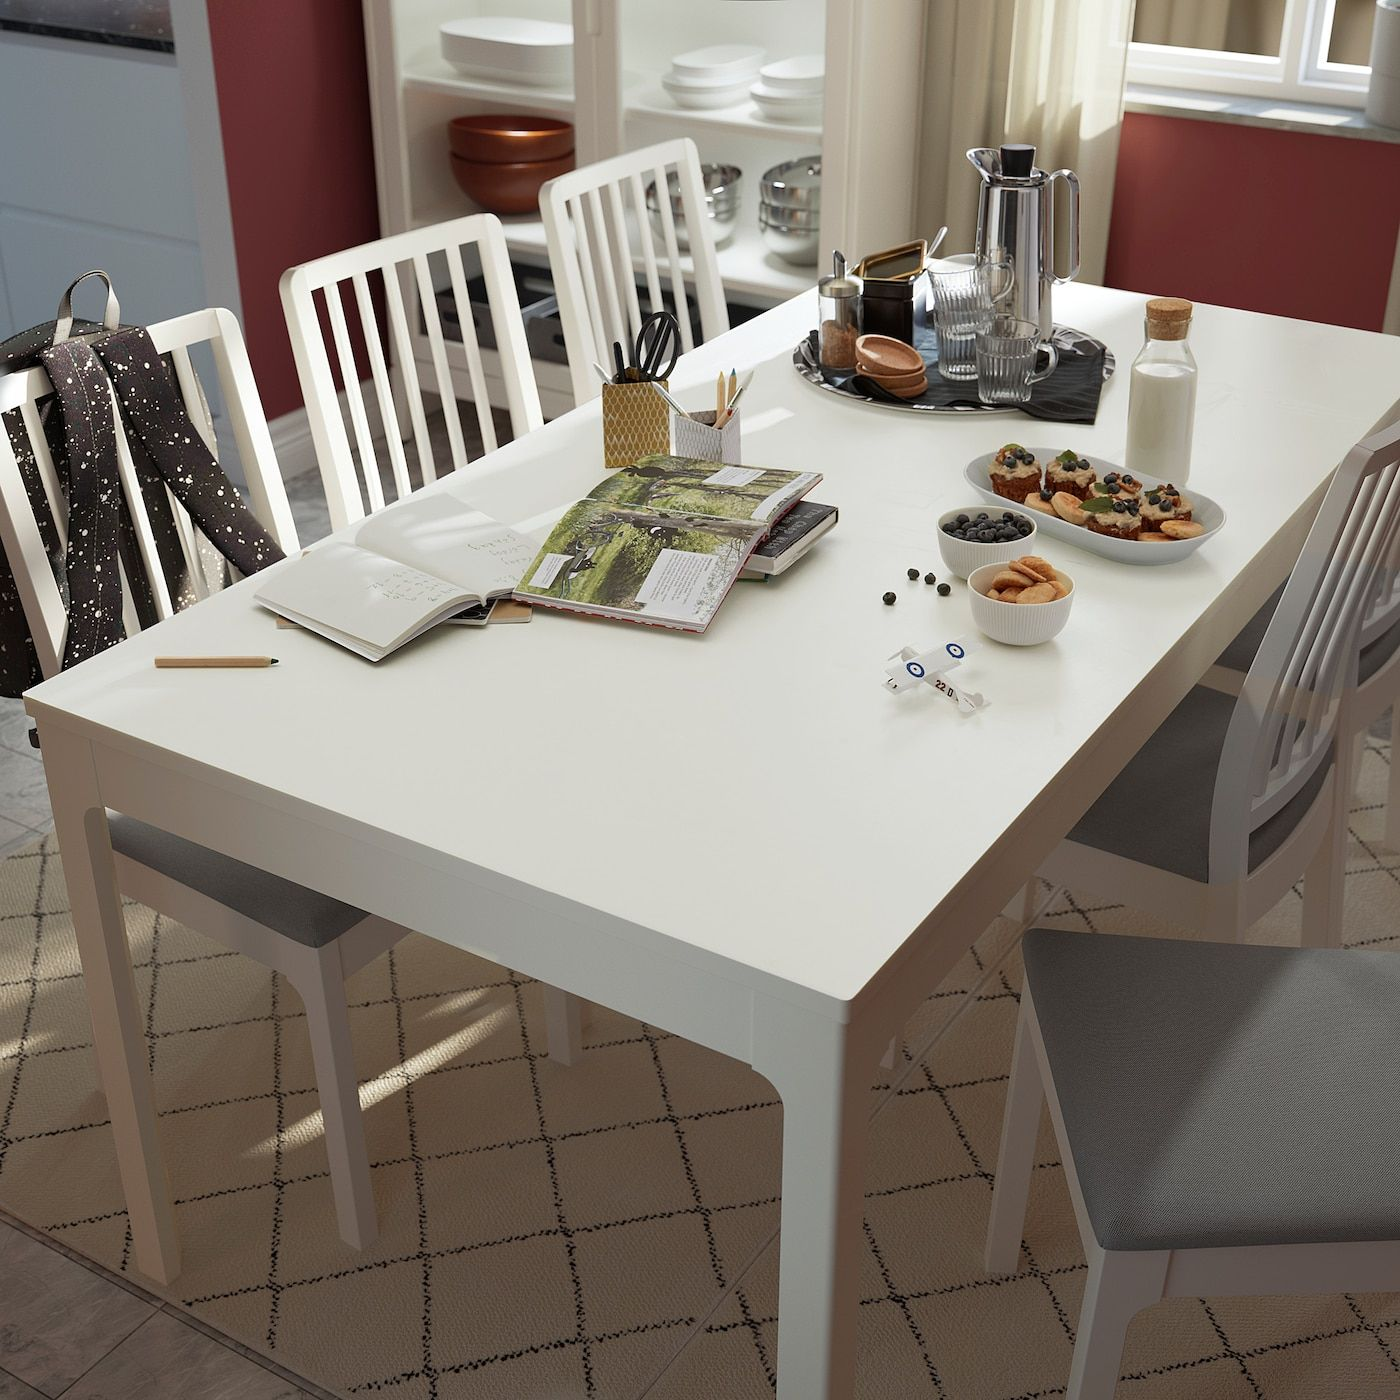 Ekedalen Extendable Table White Ikea Canada Ikea Dining Table Small Space White Kitchen Table Dining Table